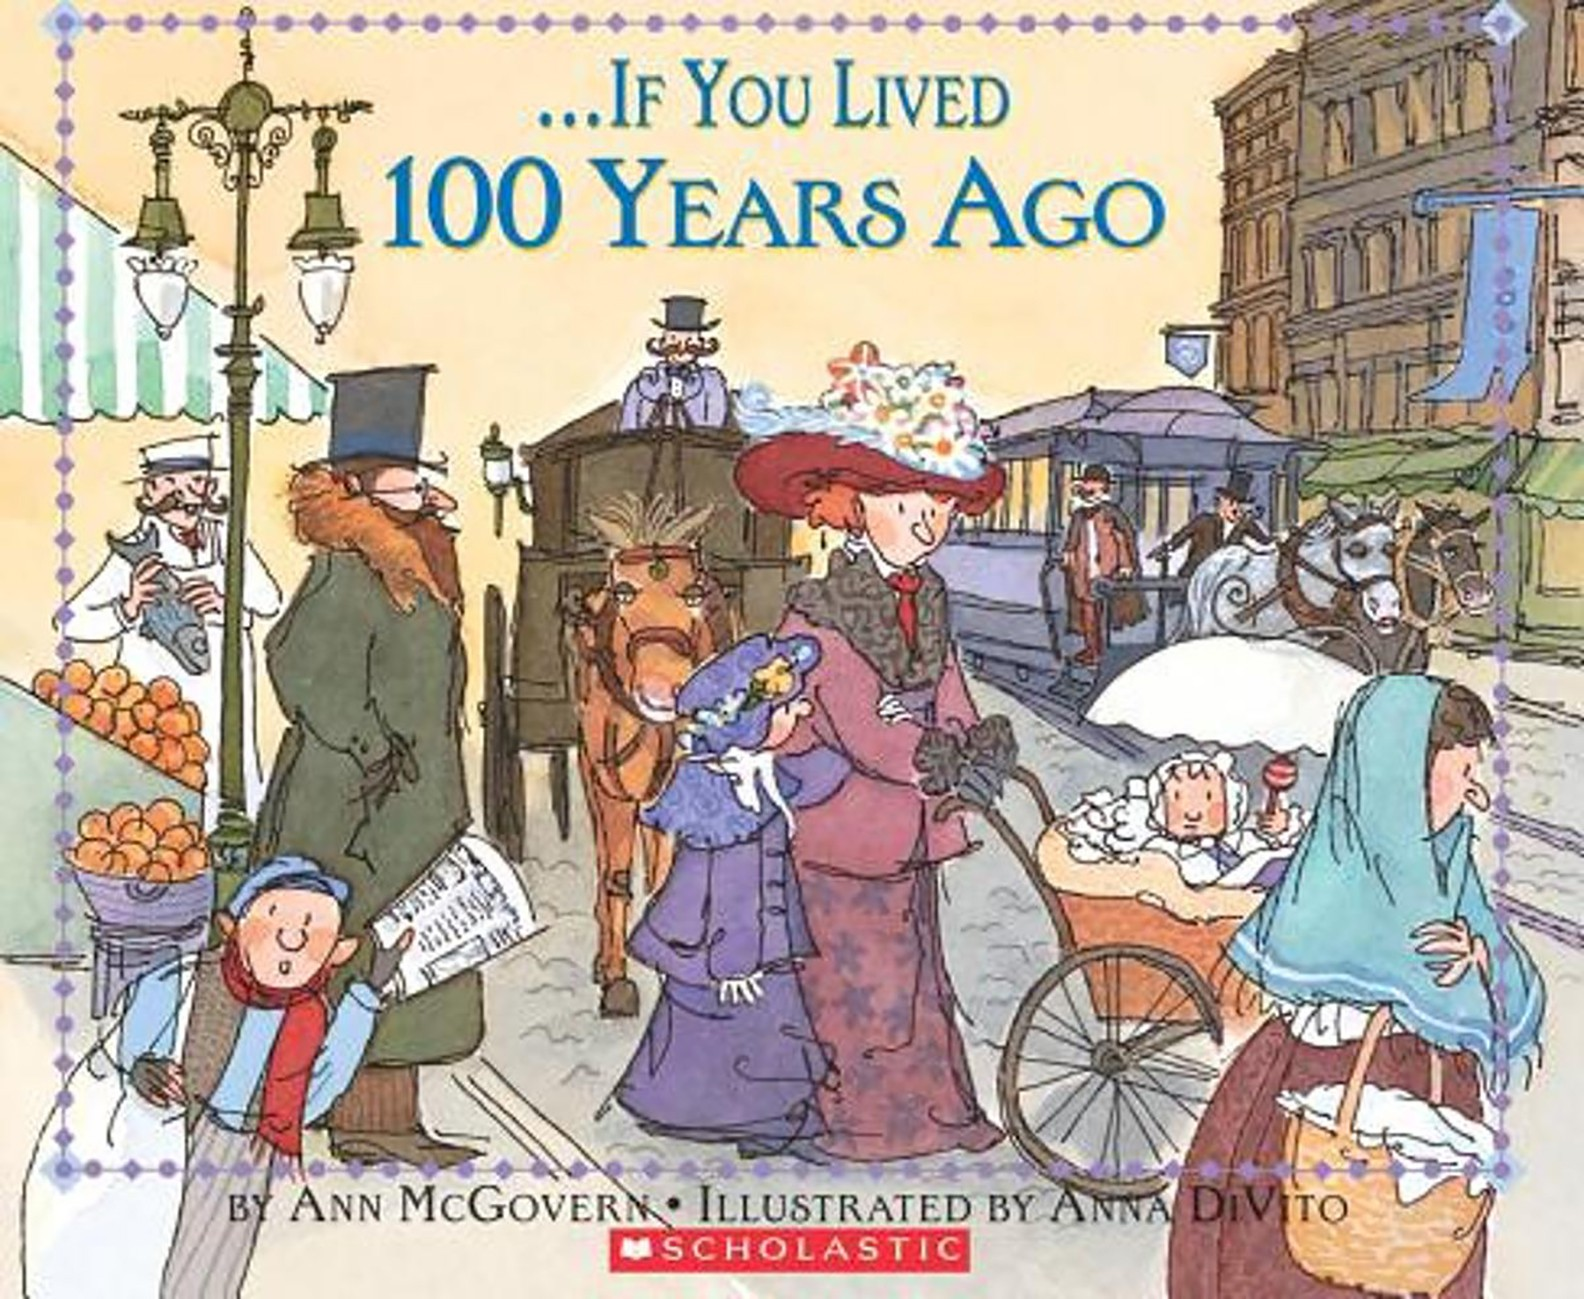 Cover of the Children's Book If You Lived 100 Years Ago